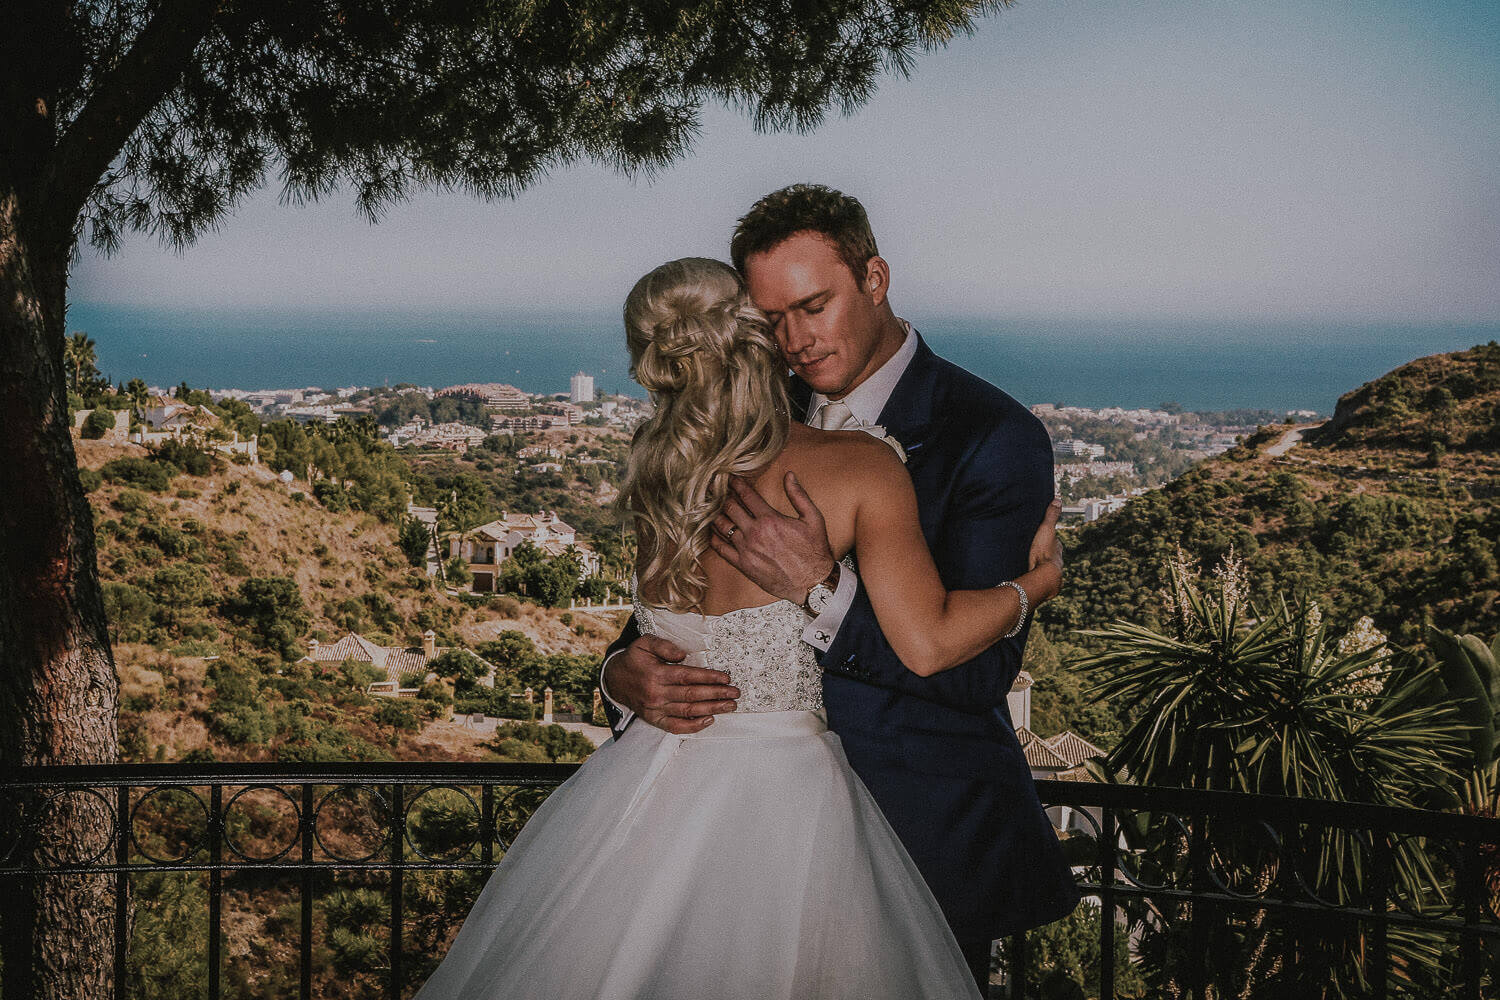 Russell Watson hugging bride on wedding day with Behaves landscape